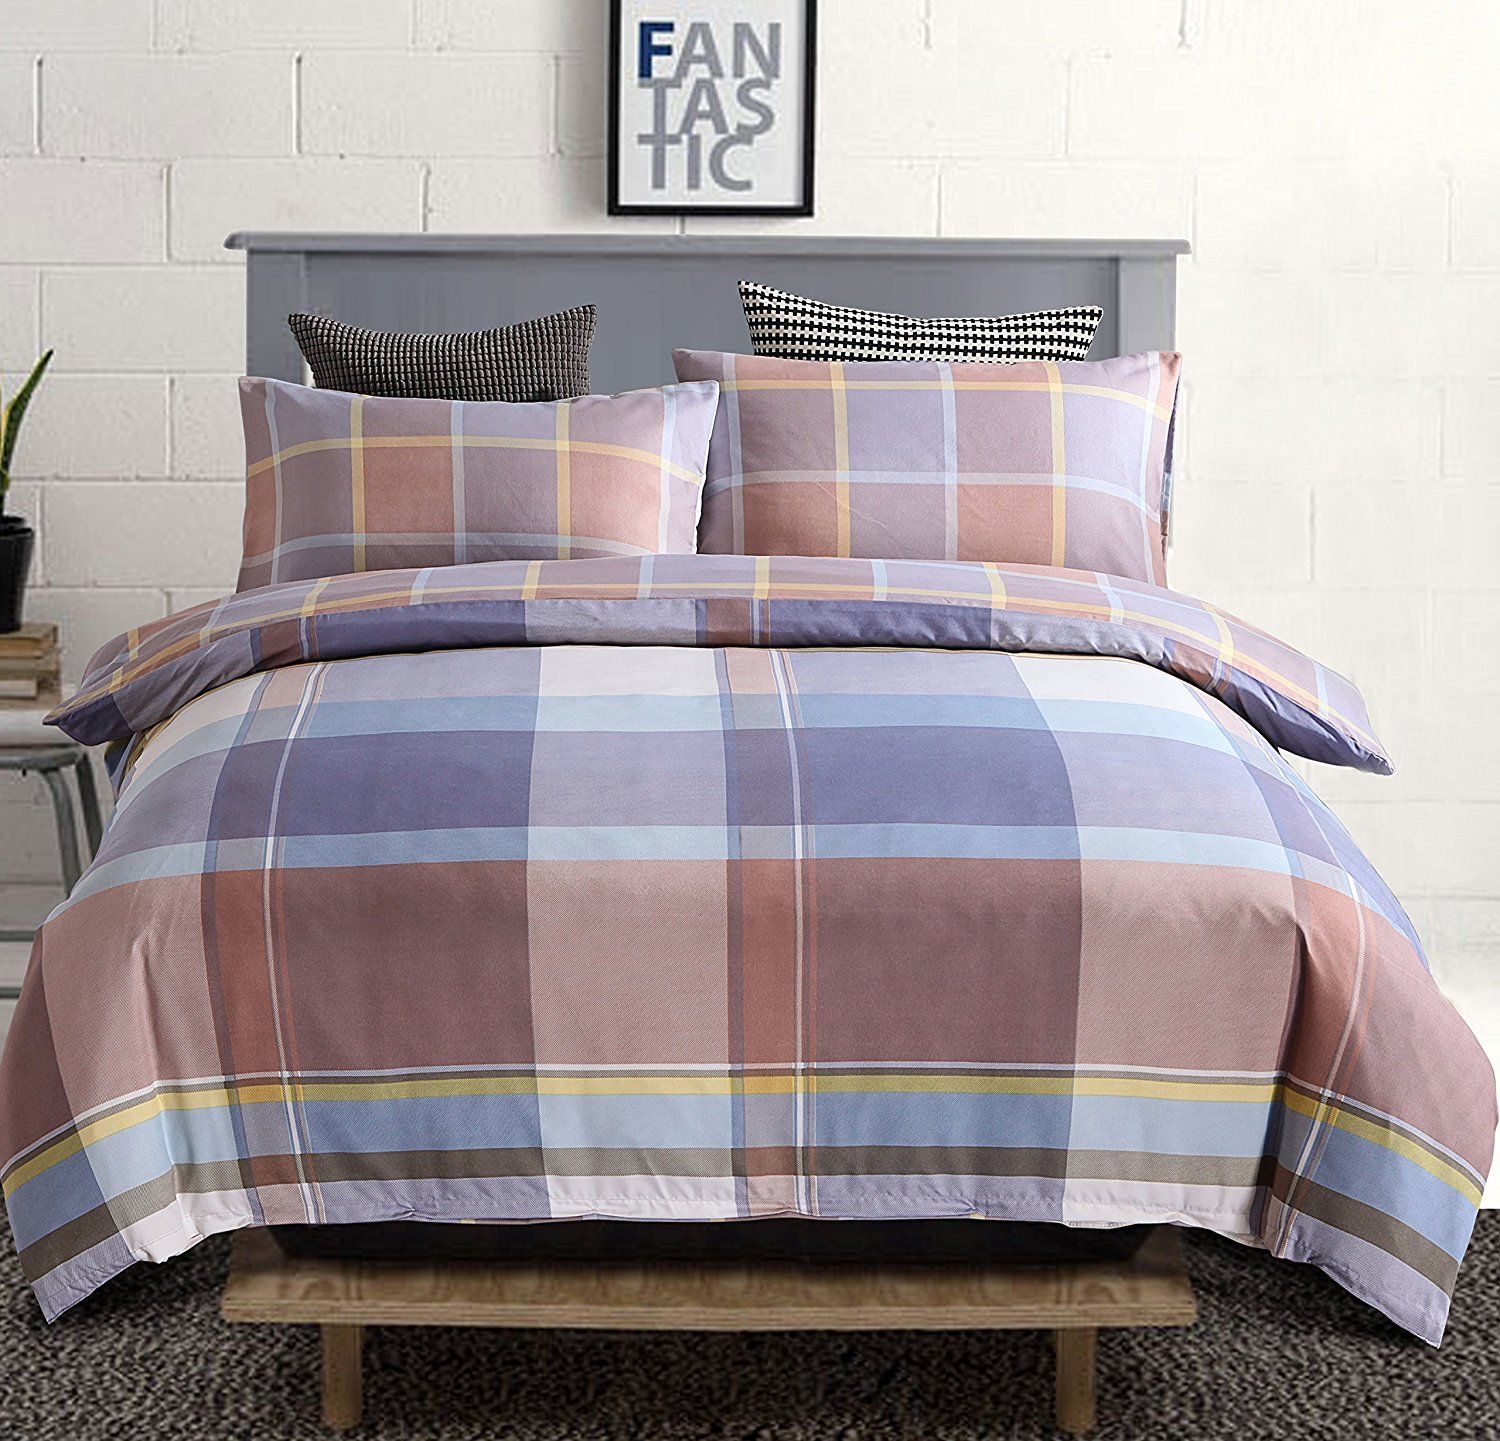 Top 10 Best Quilt Sets in 2017 Reviews Quilt sets, Bed